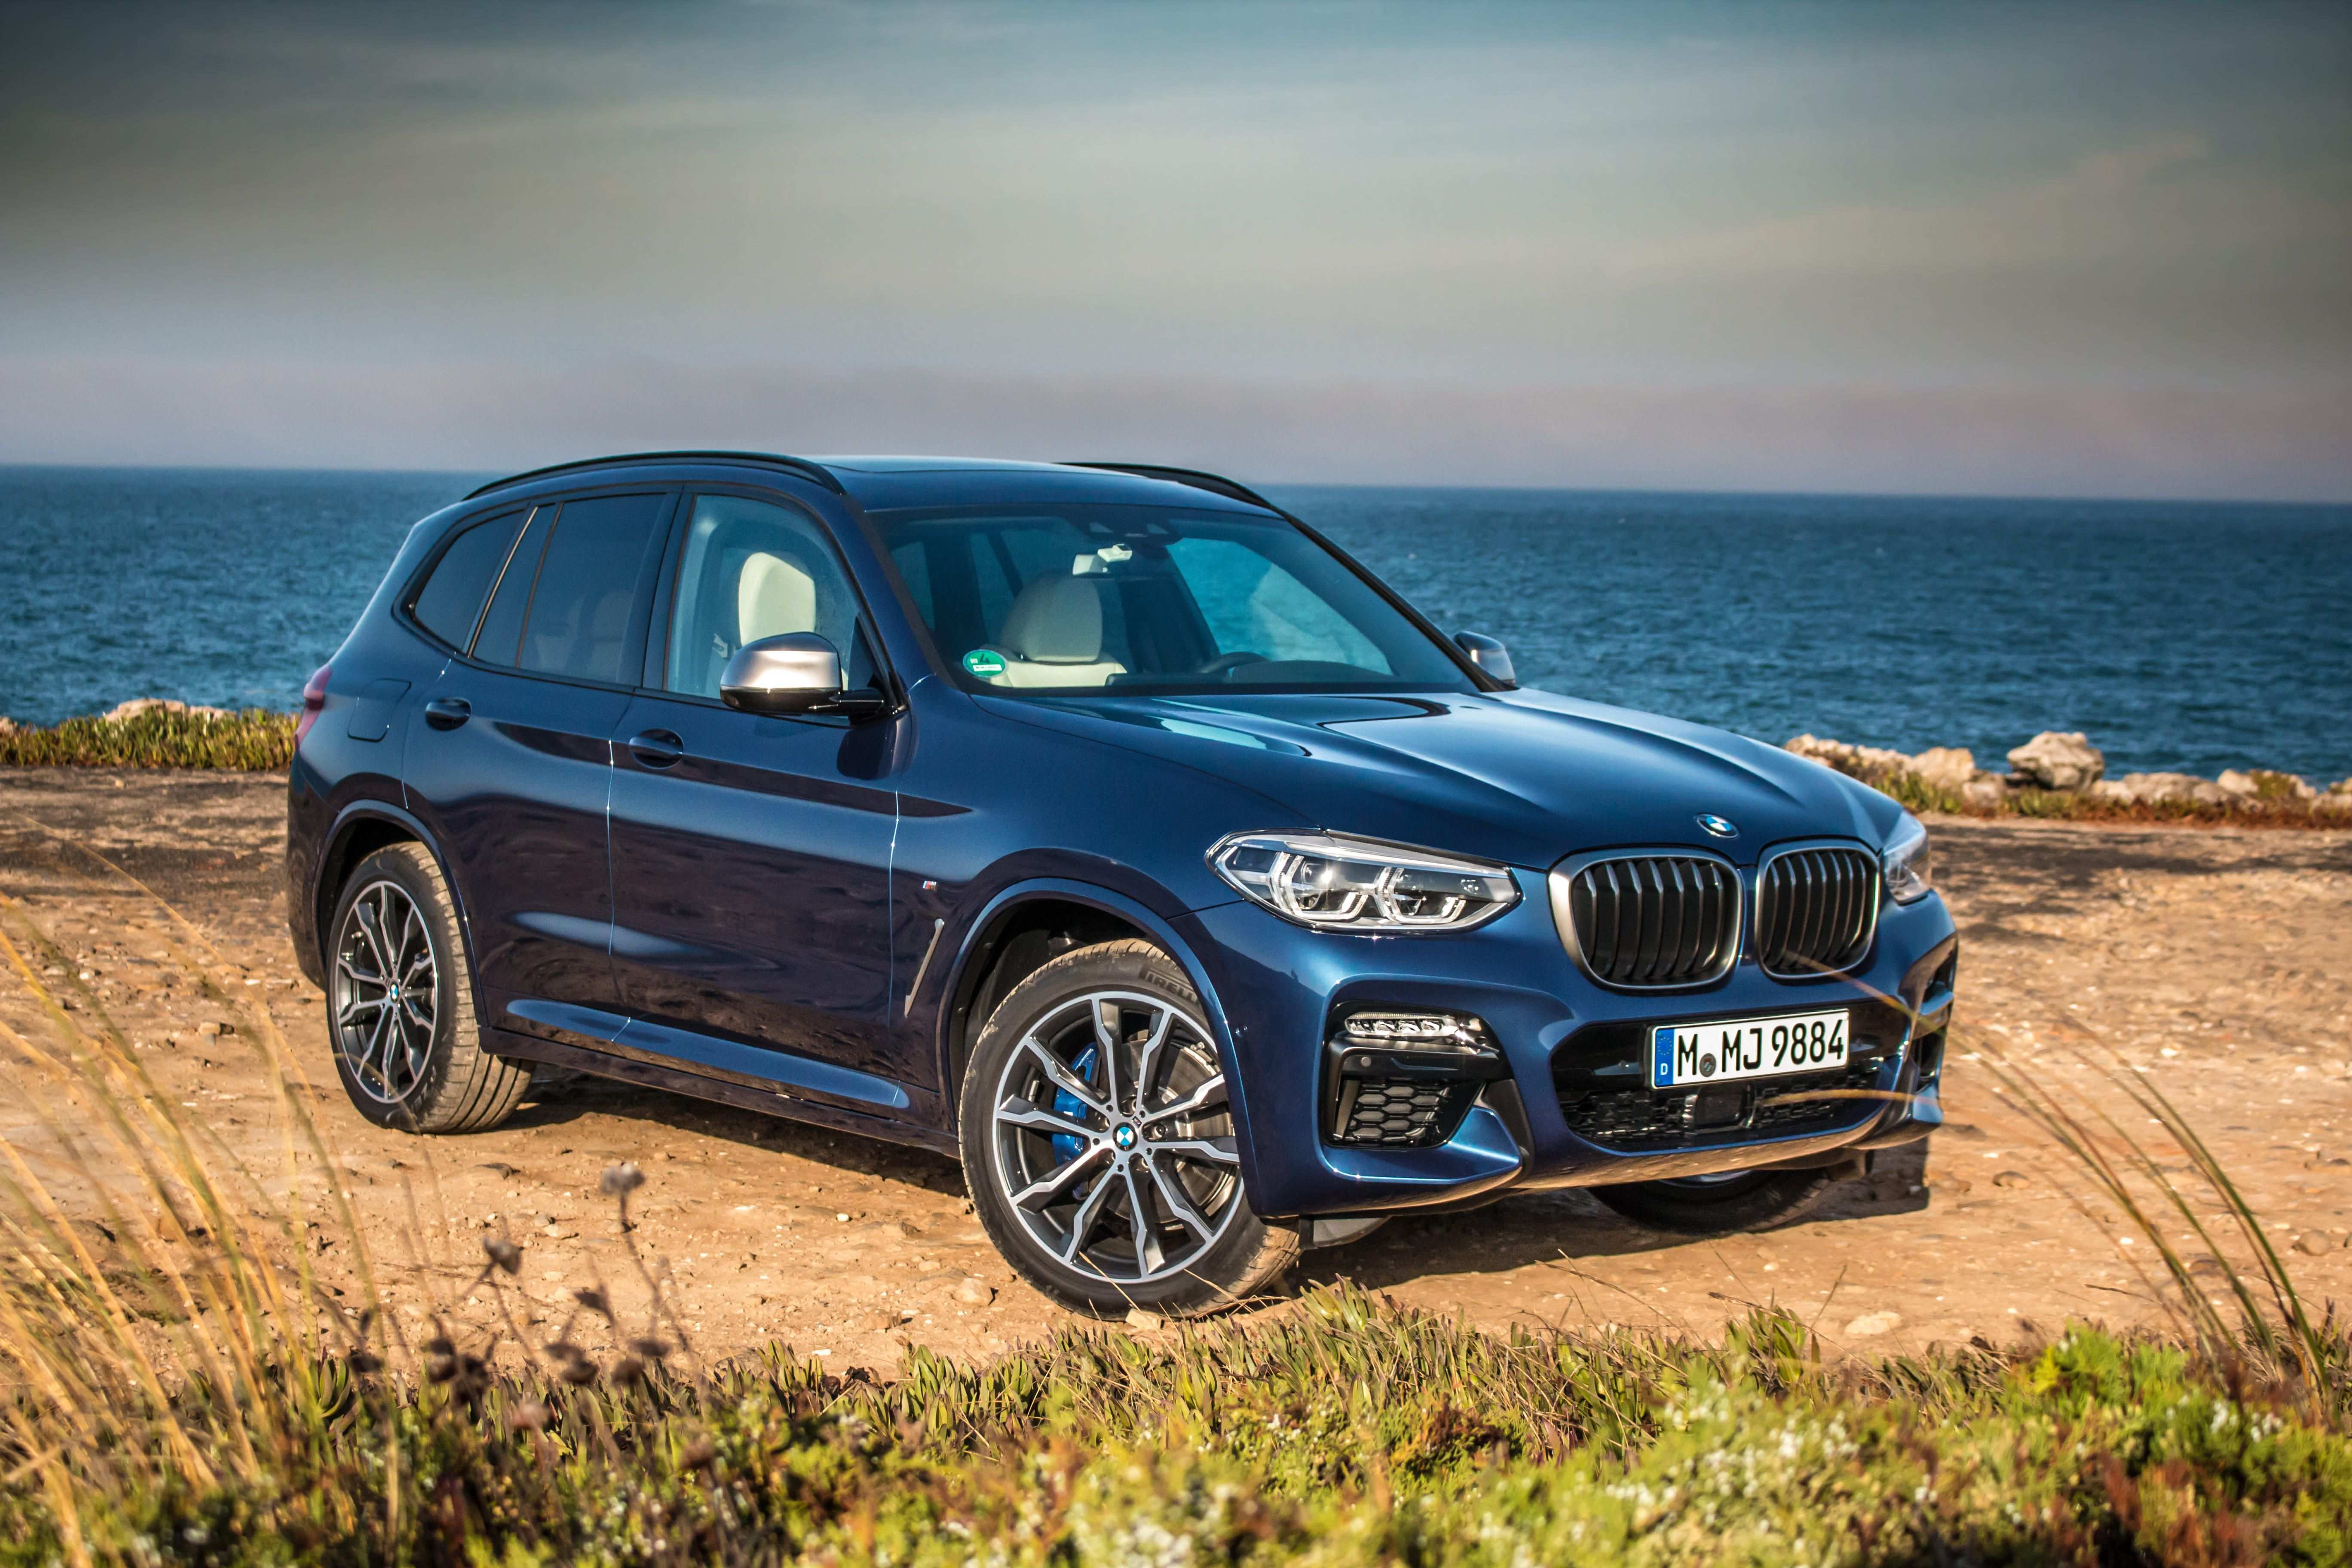 94 Best Review 2020 Bmw X3 Electric Spesification with 2020 Bmw X3 Electric